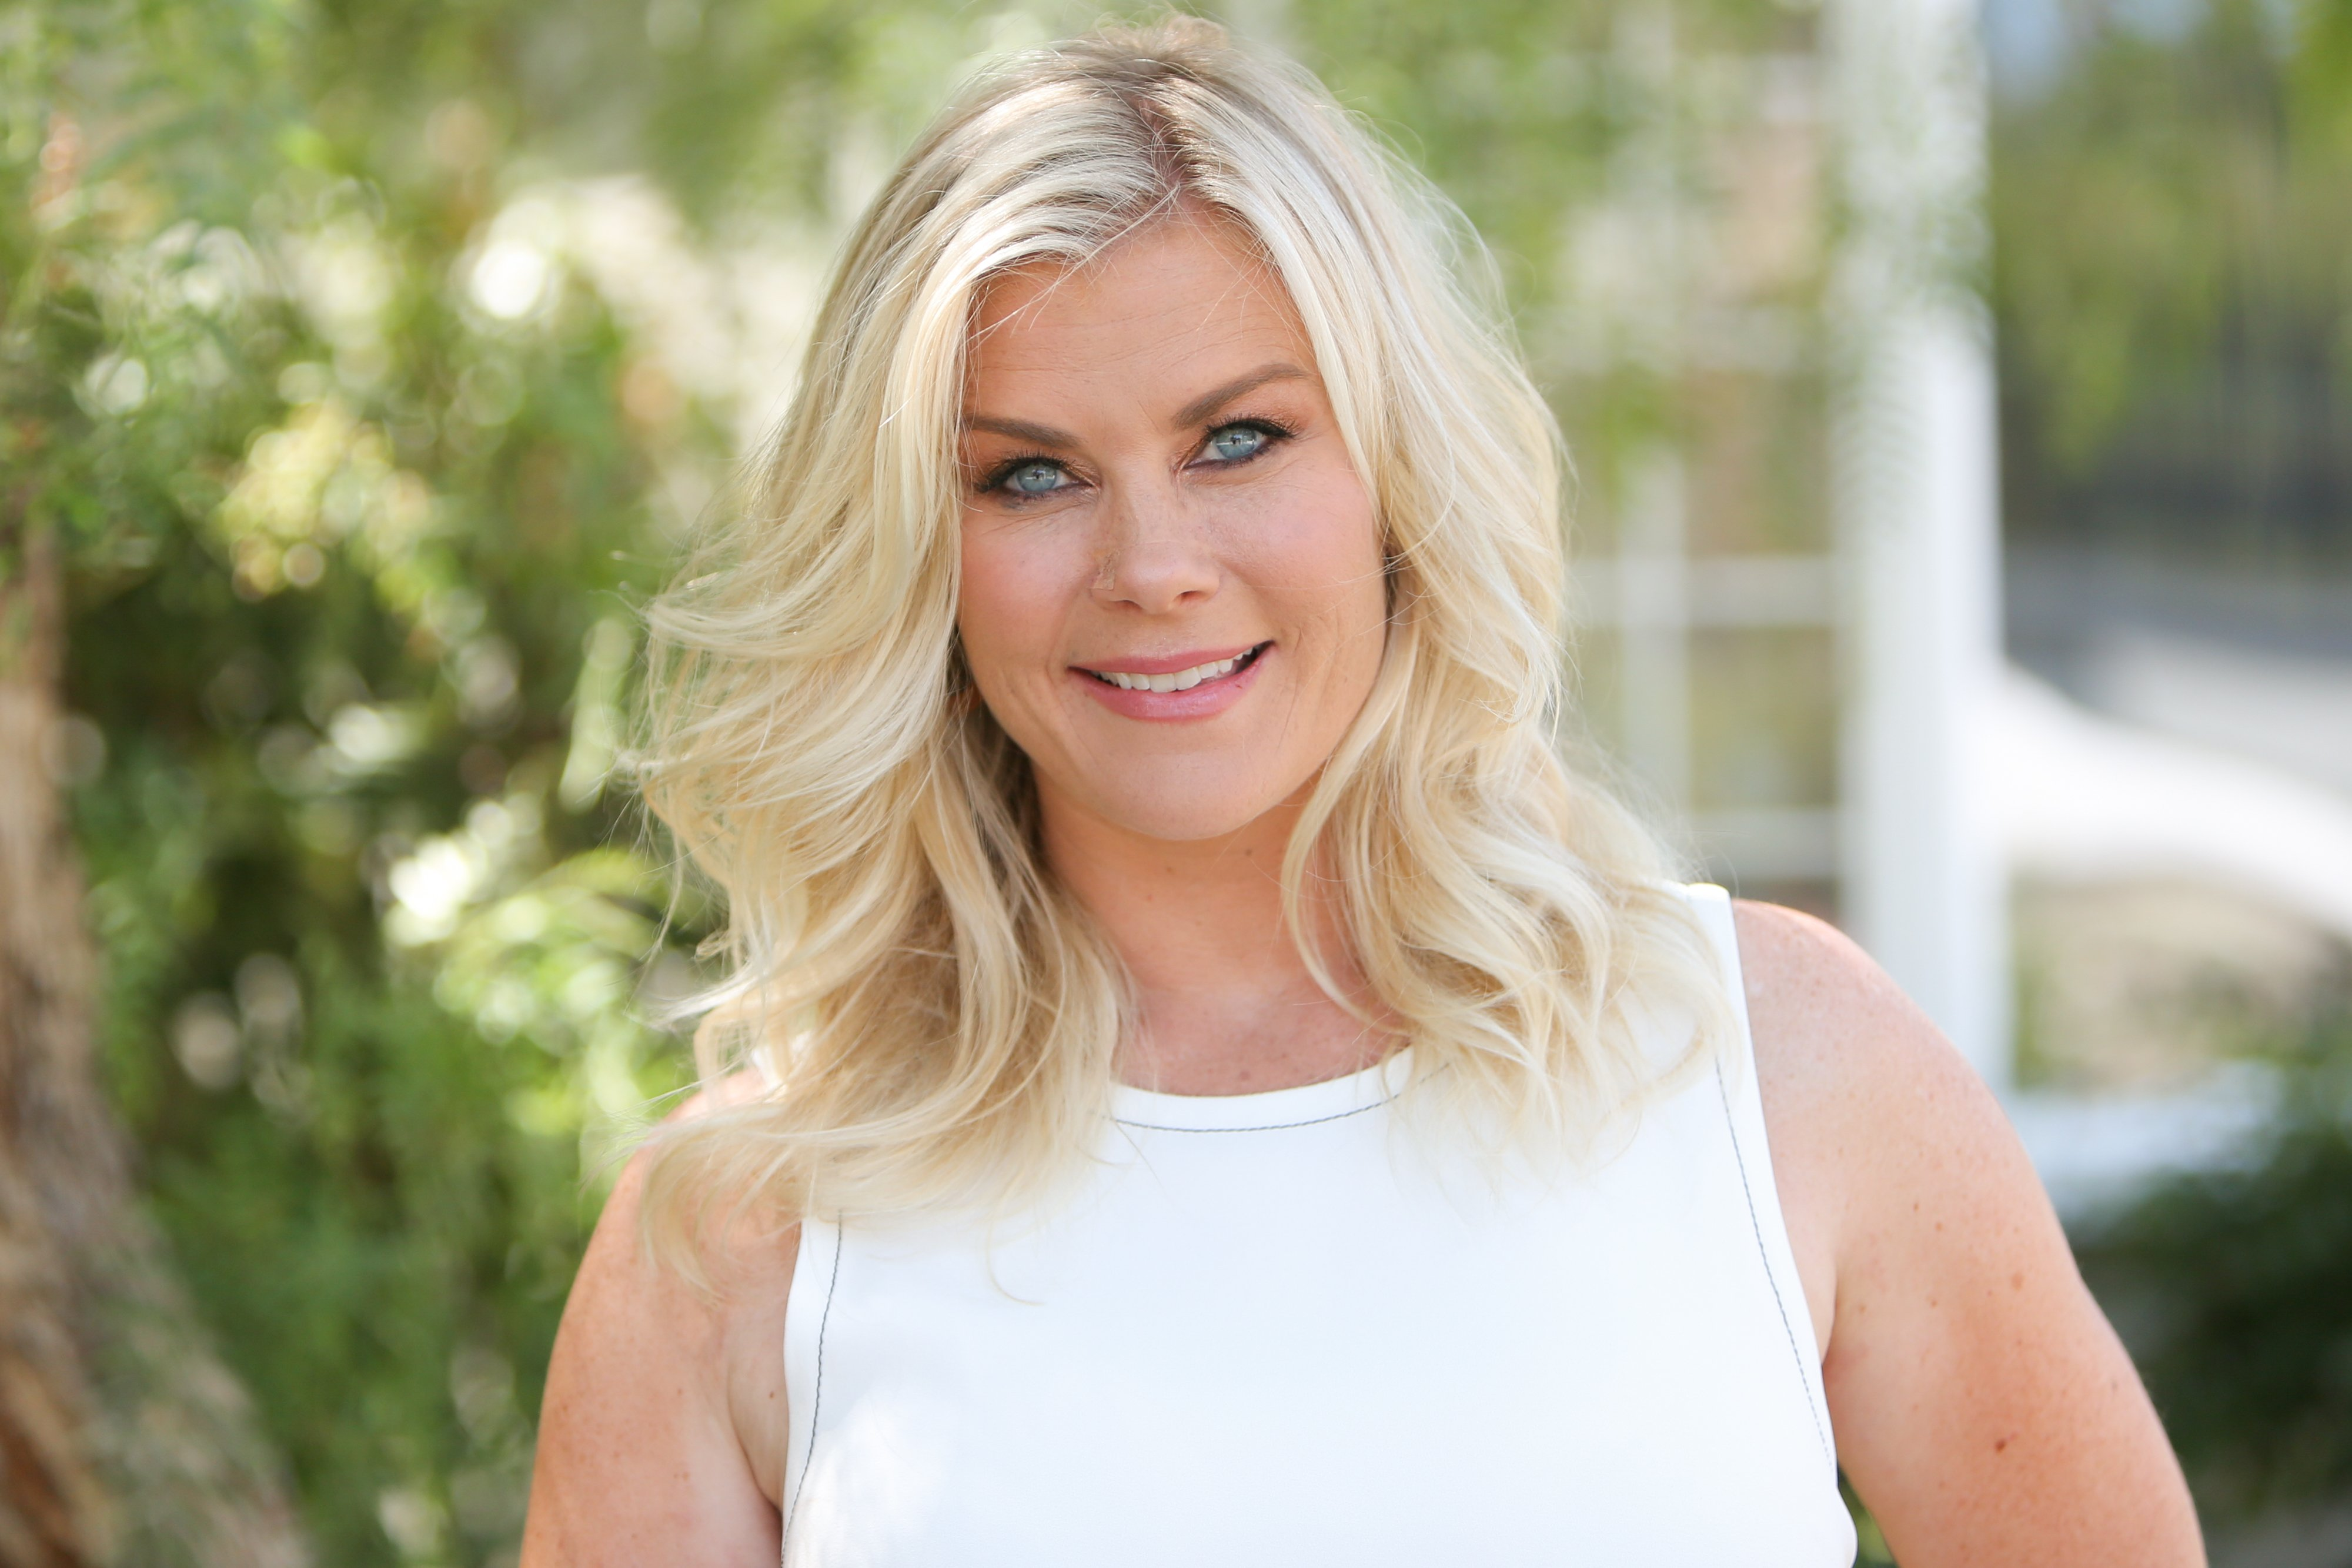 """Alison Sweeney visits Hallmark's """"Home & Family"""" on July 26, 2019, in Universal City, California.   Source: Getty Images."""